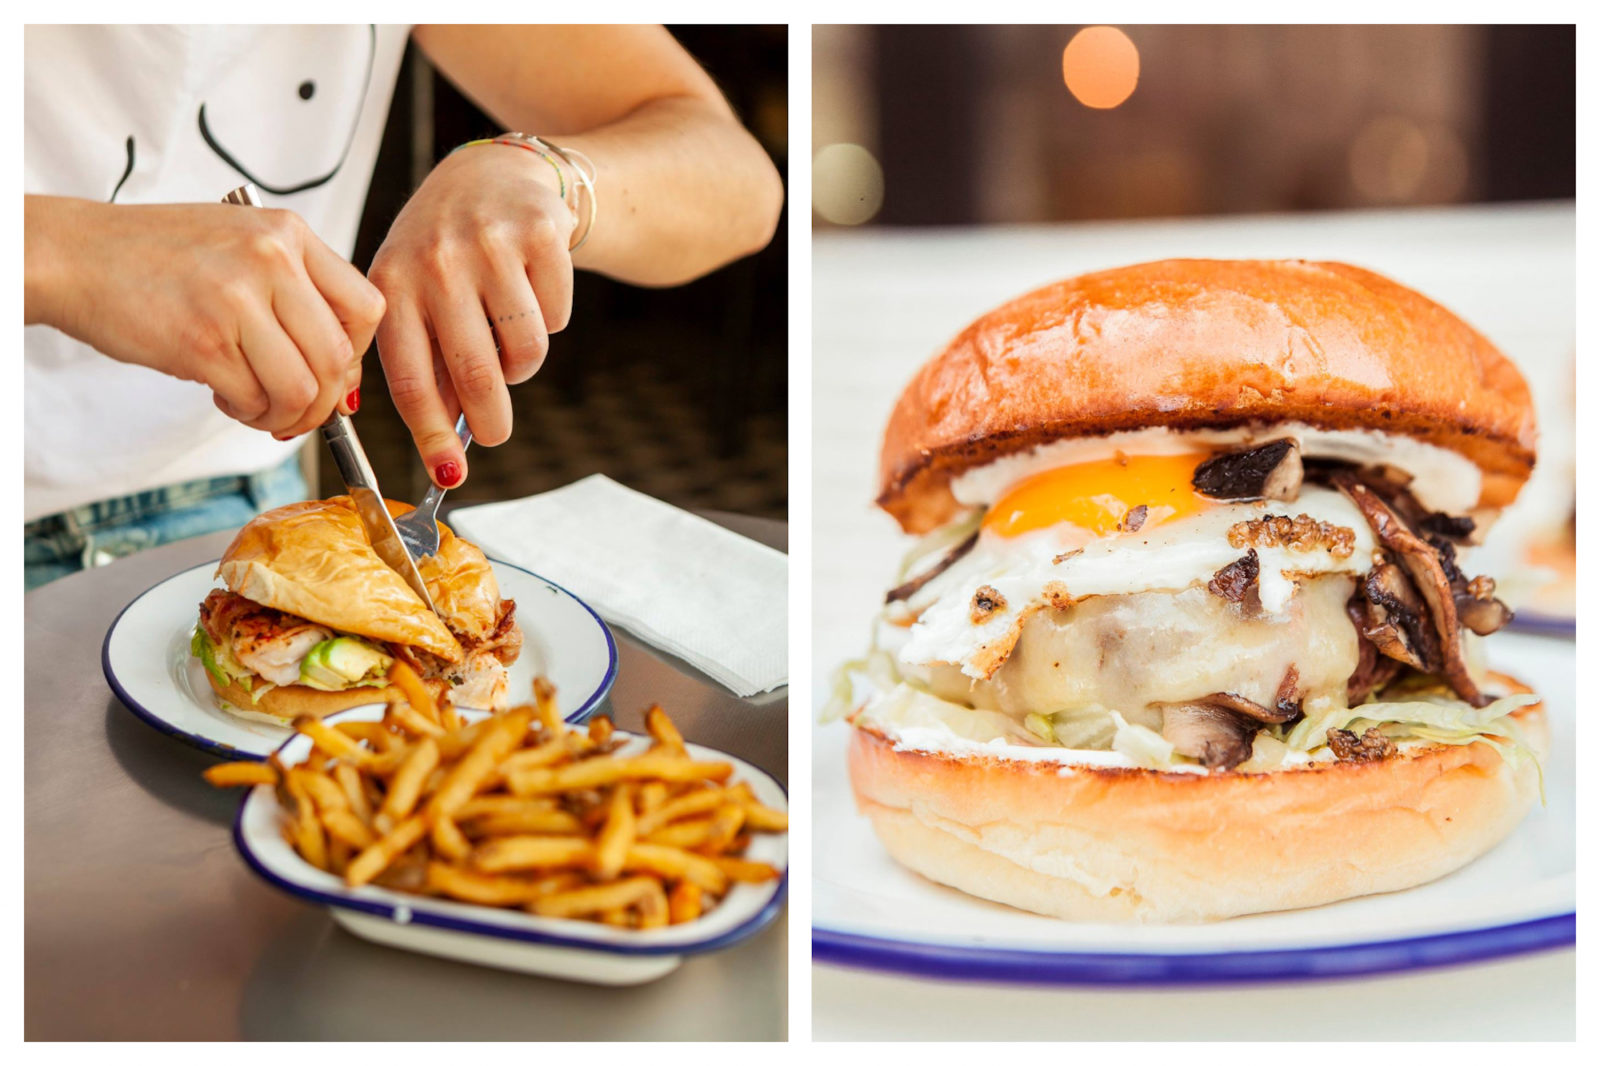 One of the best places to go for a burger in Paris is PNY for its variety of burger fillings like this grilled chicken one with crispy fries which this girl is tucking into (left). A PNY burger in Paris with original fillings like an egg and mushrooms (right).